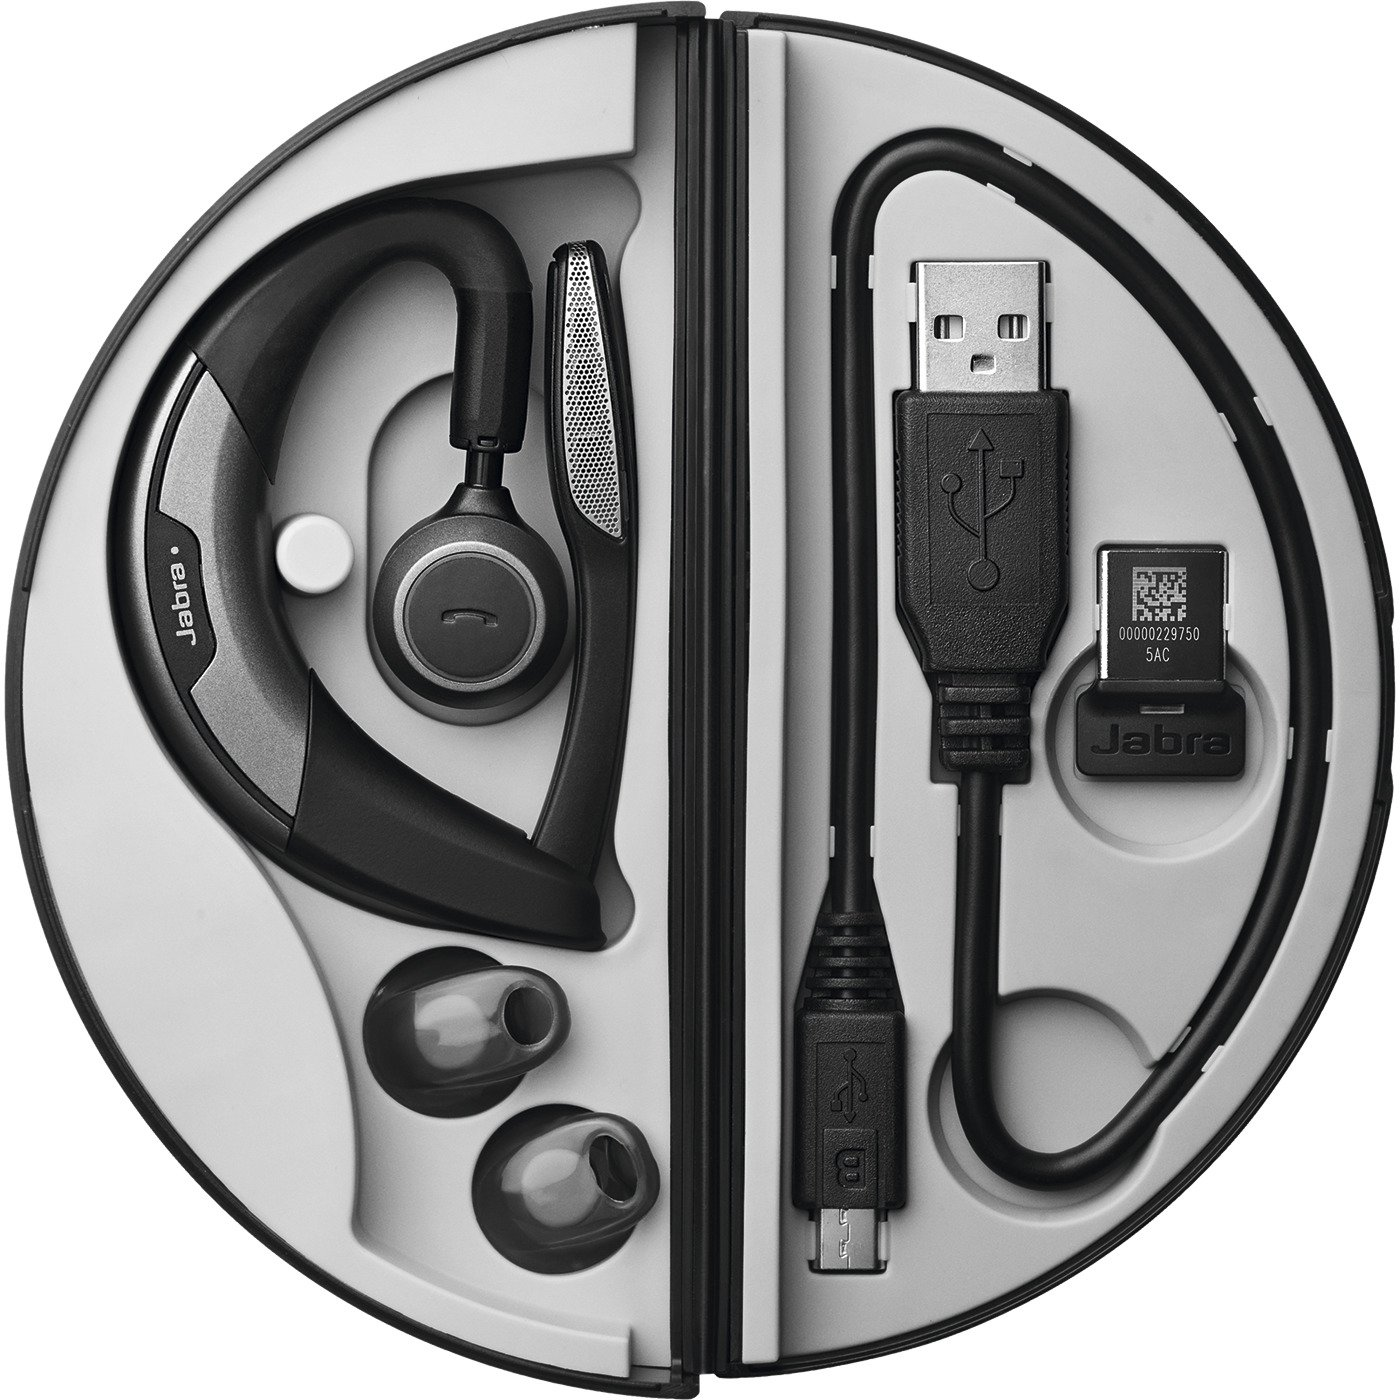 Jabra MOTION UC with Travel & Charge Kit MS (6640-906-305) - by Jabra (Image #5)